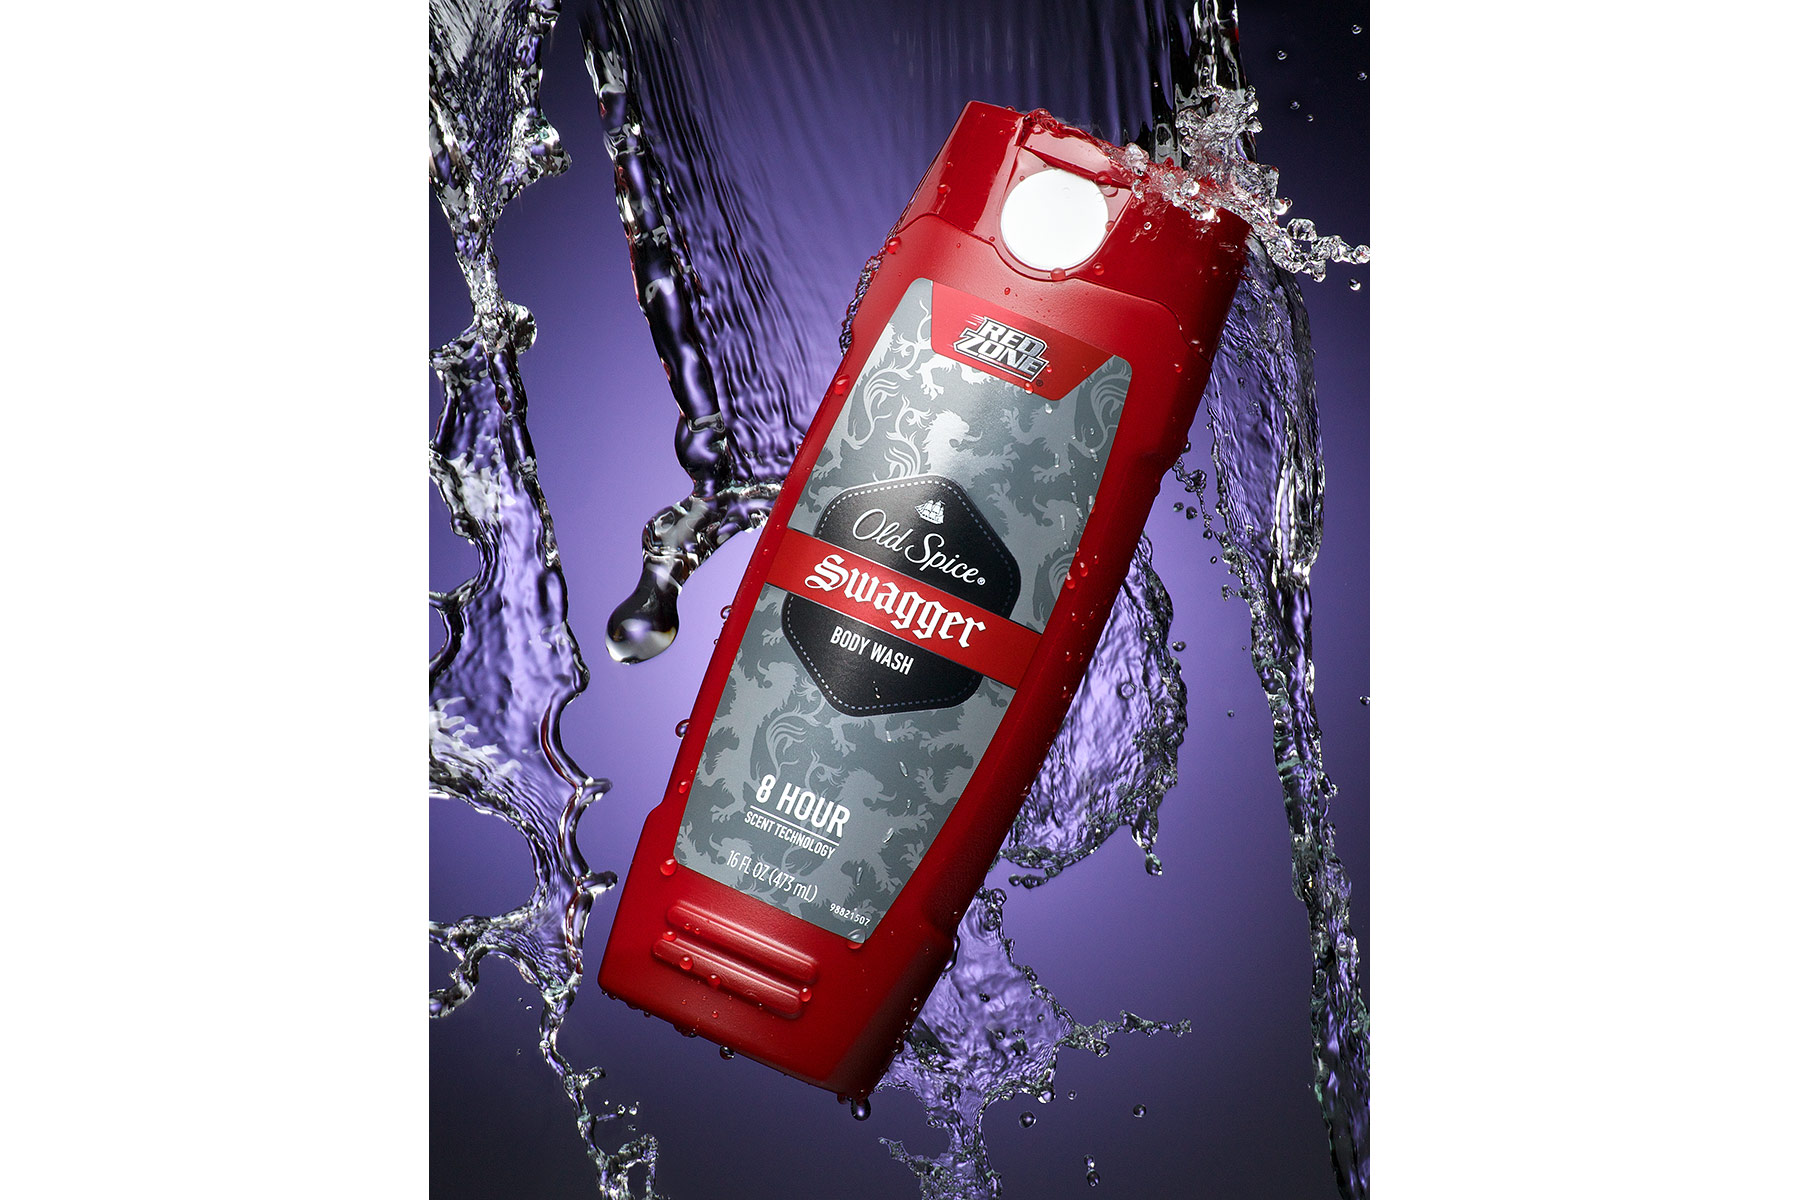 Old Spice Body Wash | Dovis Bird Agency Reps